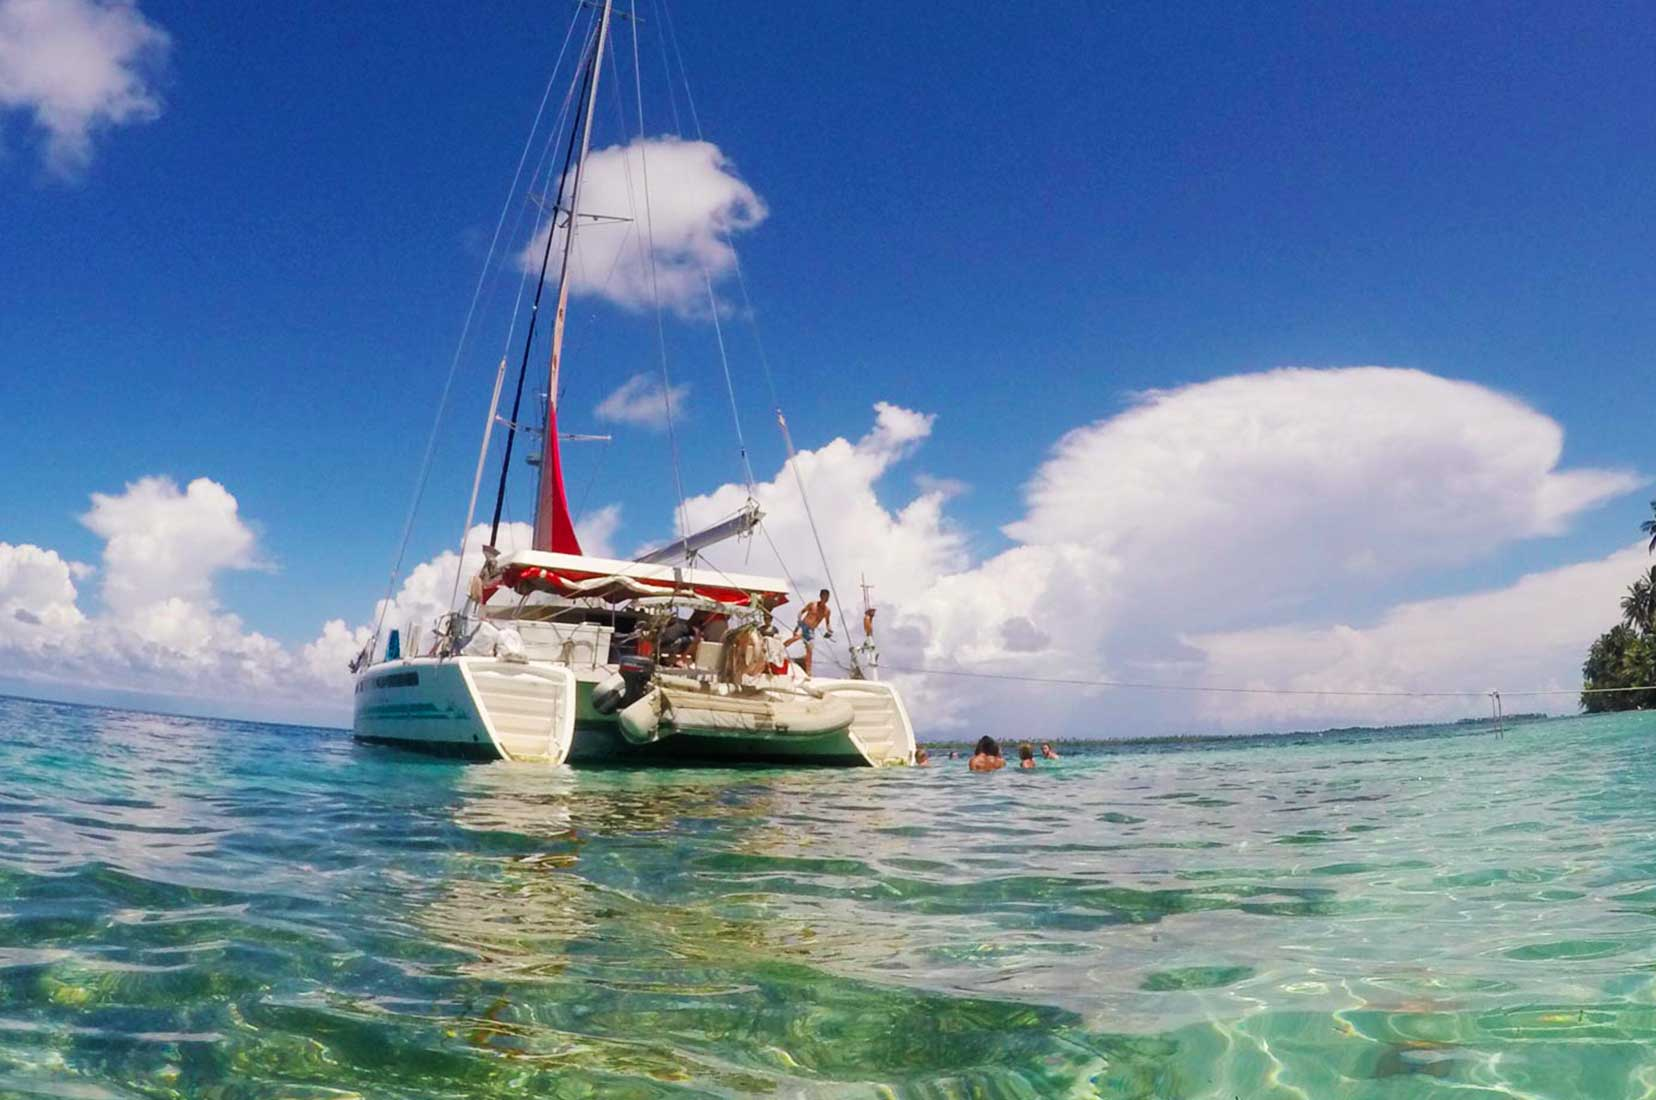 The Best Boats from Panama to Colombia | Colombia Panama Sailing